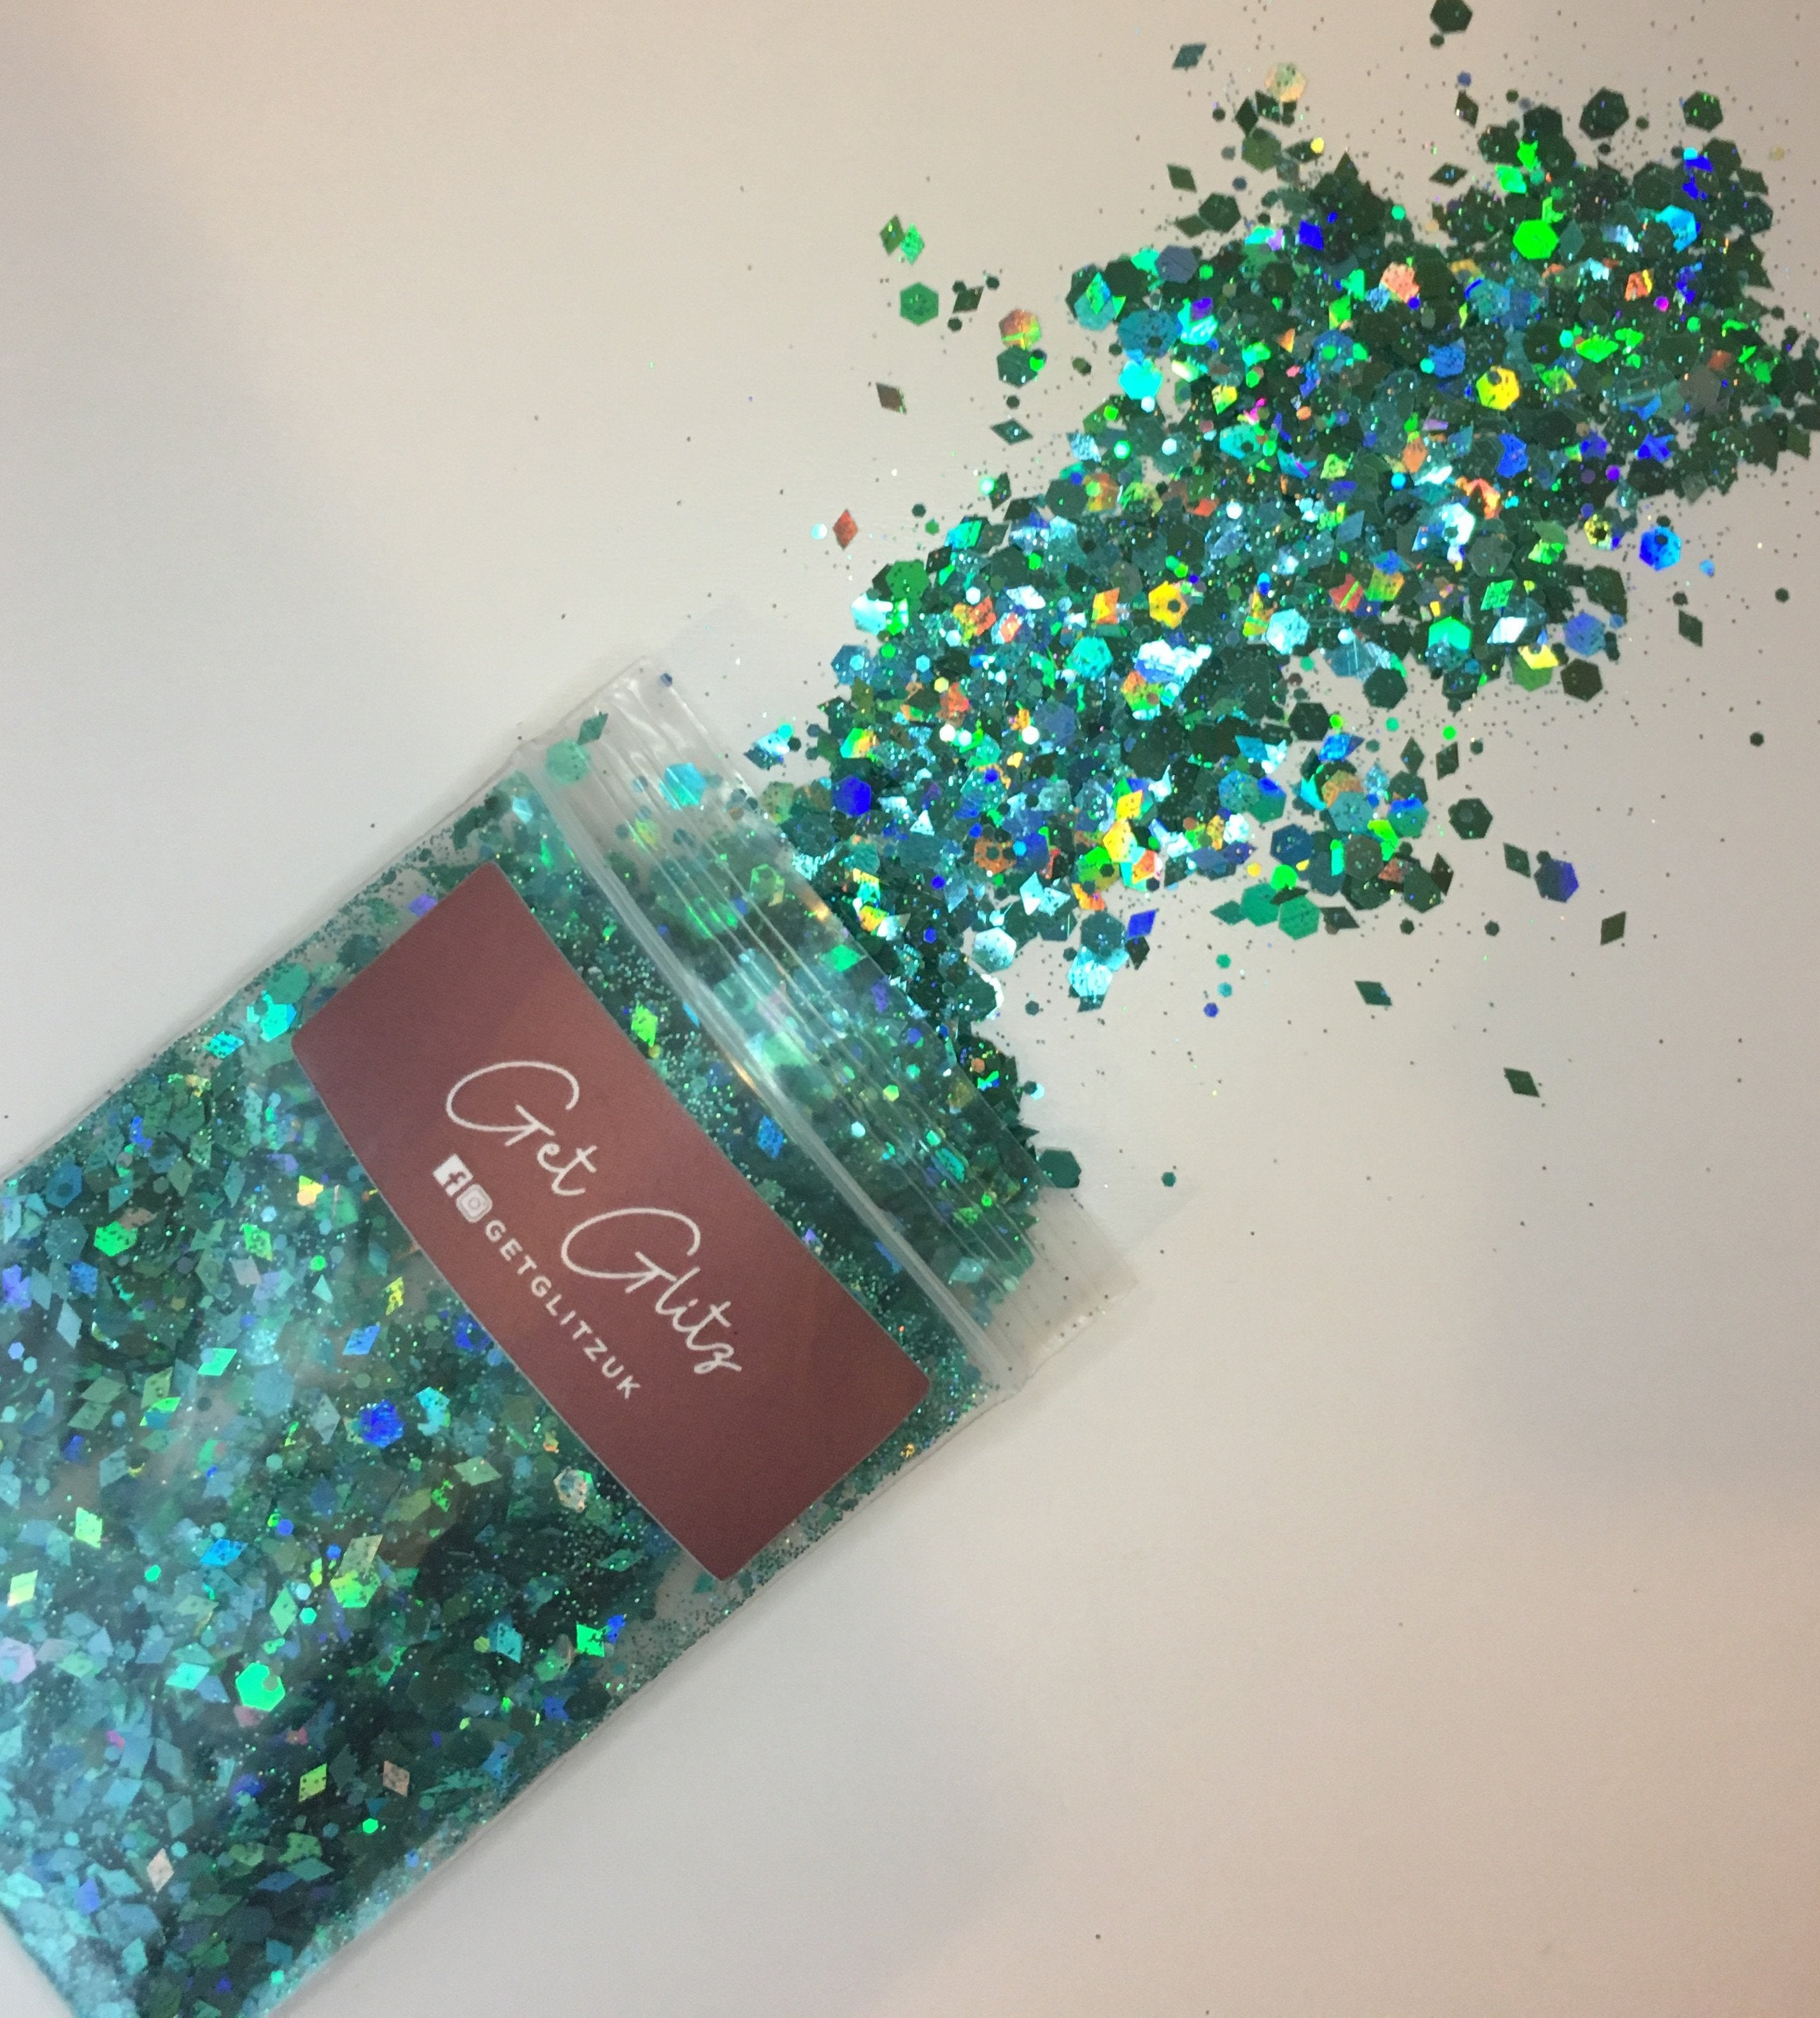 Mermaid Dreams - Chunky Glitter UK